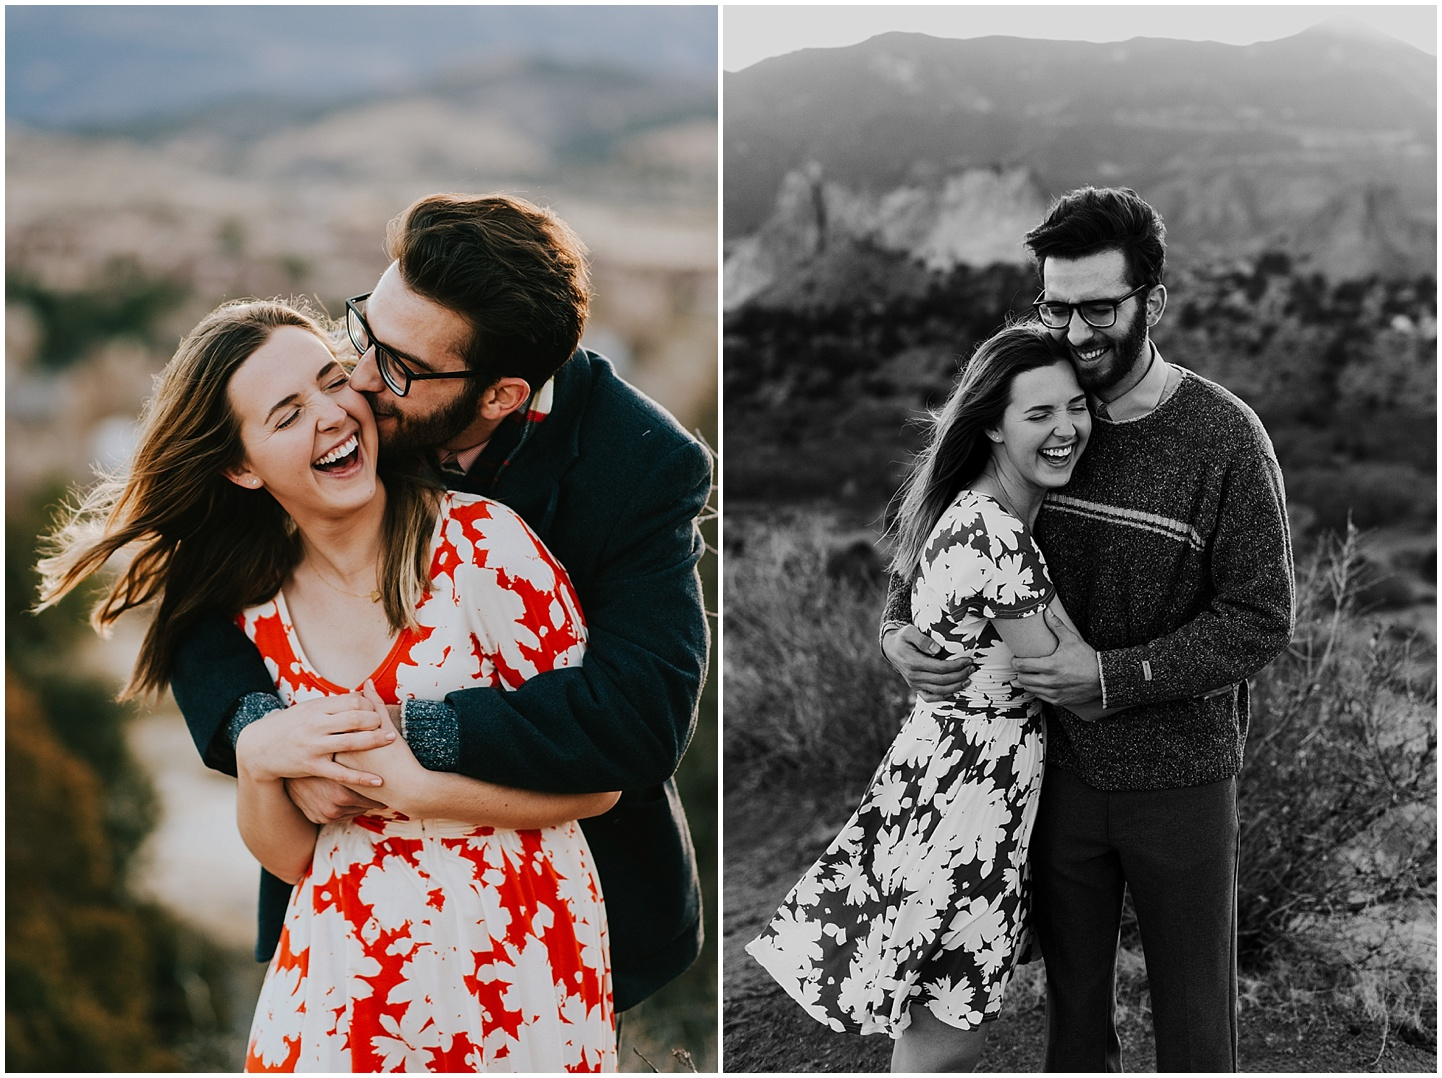 Ted making Rachel laugh during their engagement session in Colorado Springs. They were such a fun couple to photograph!